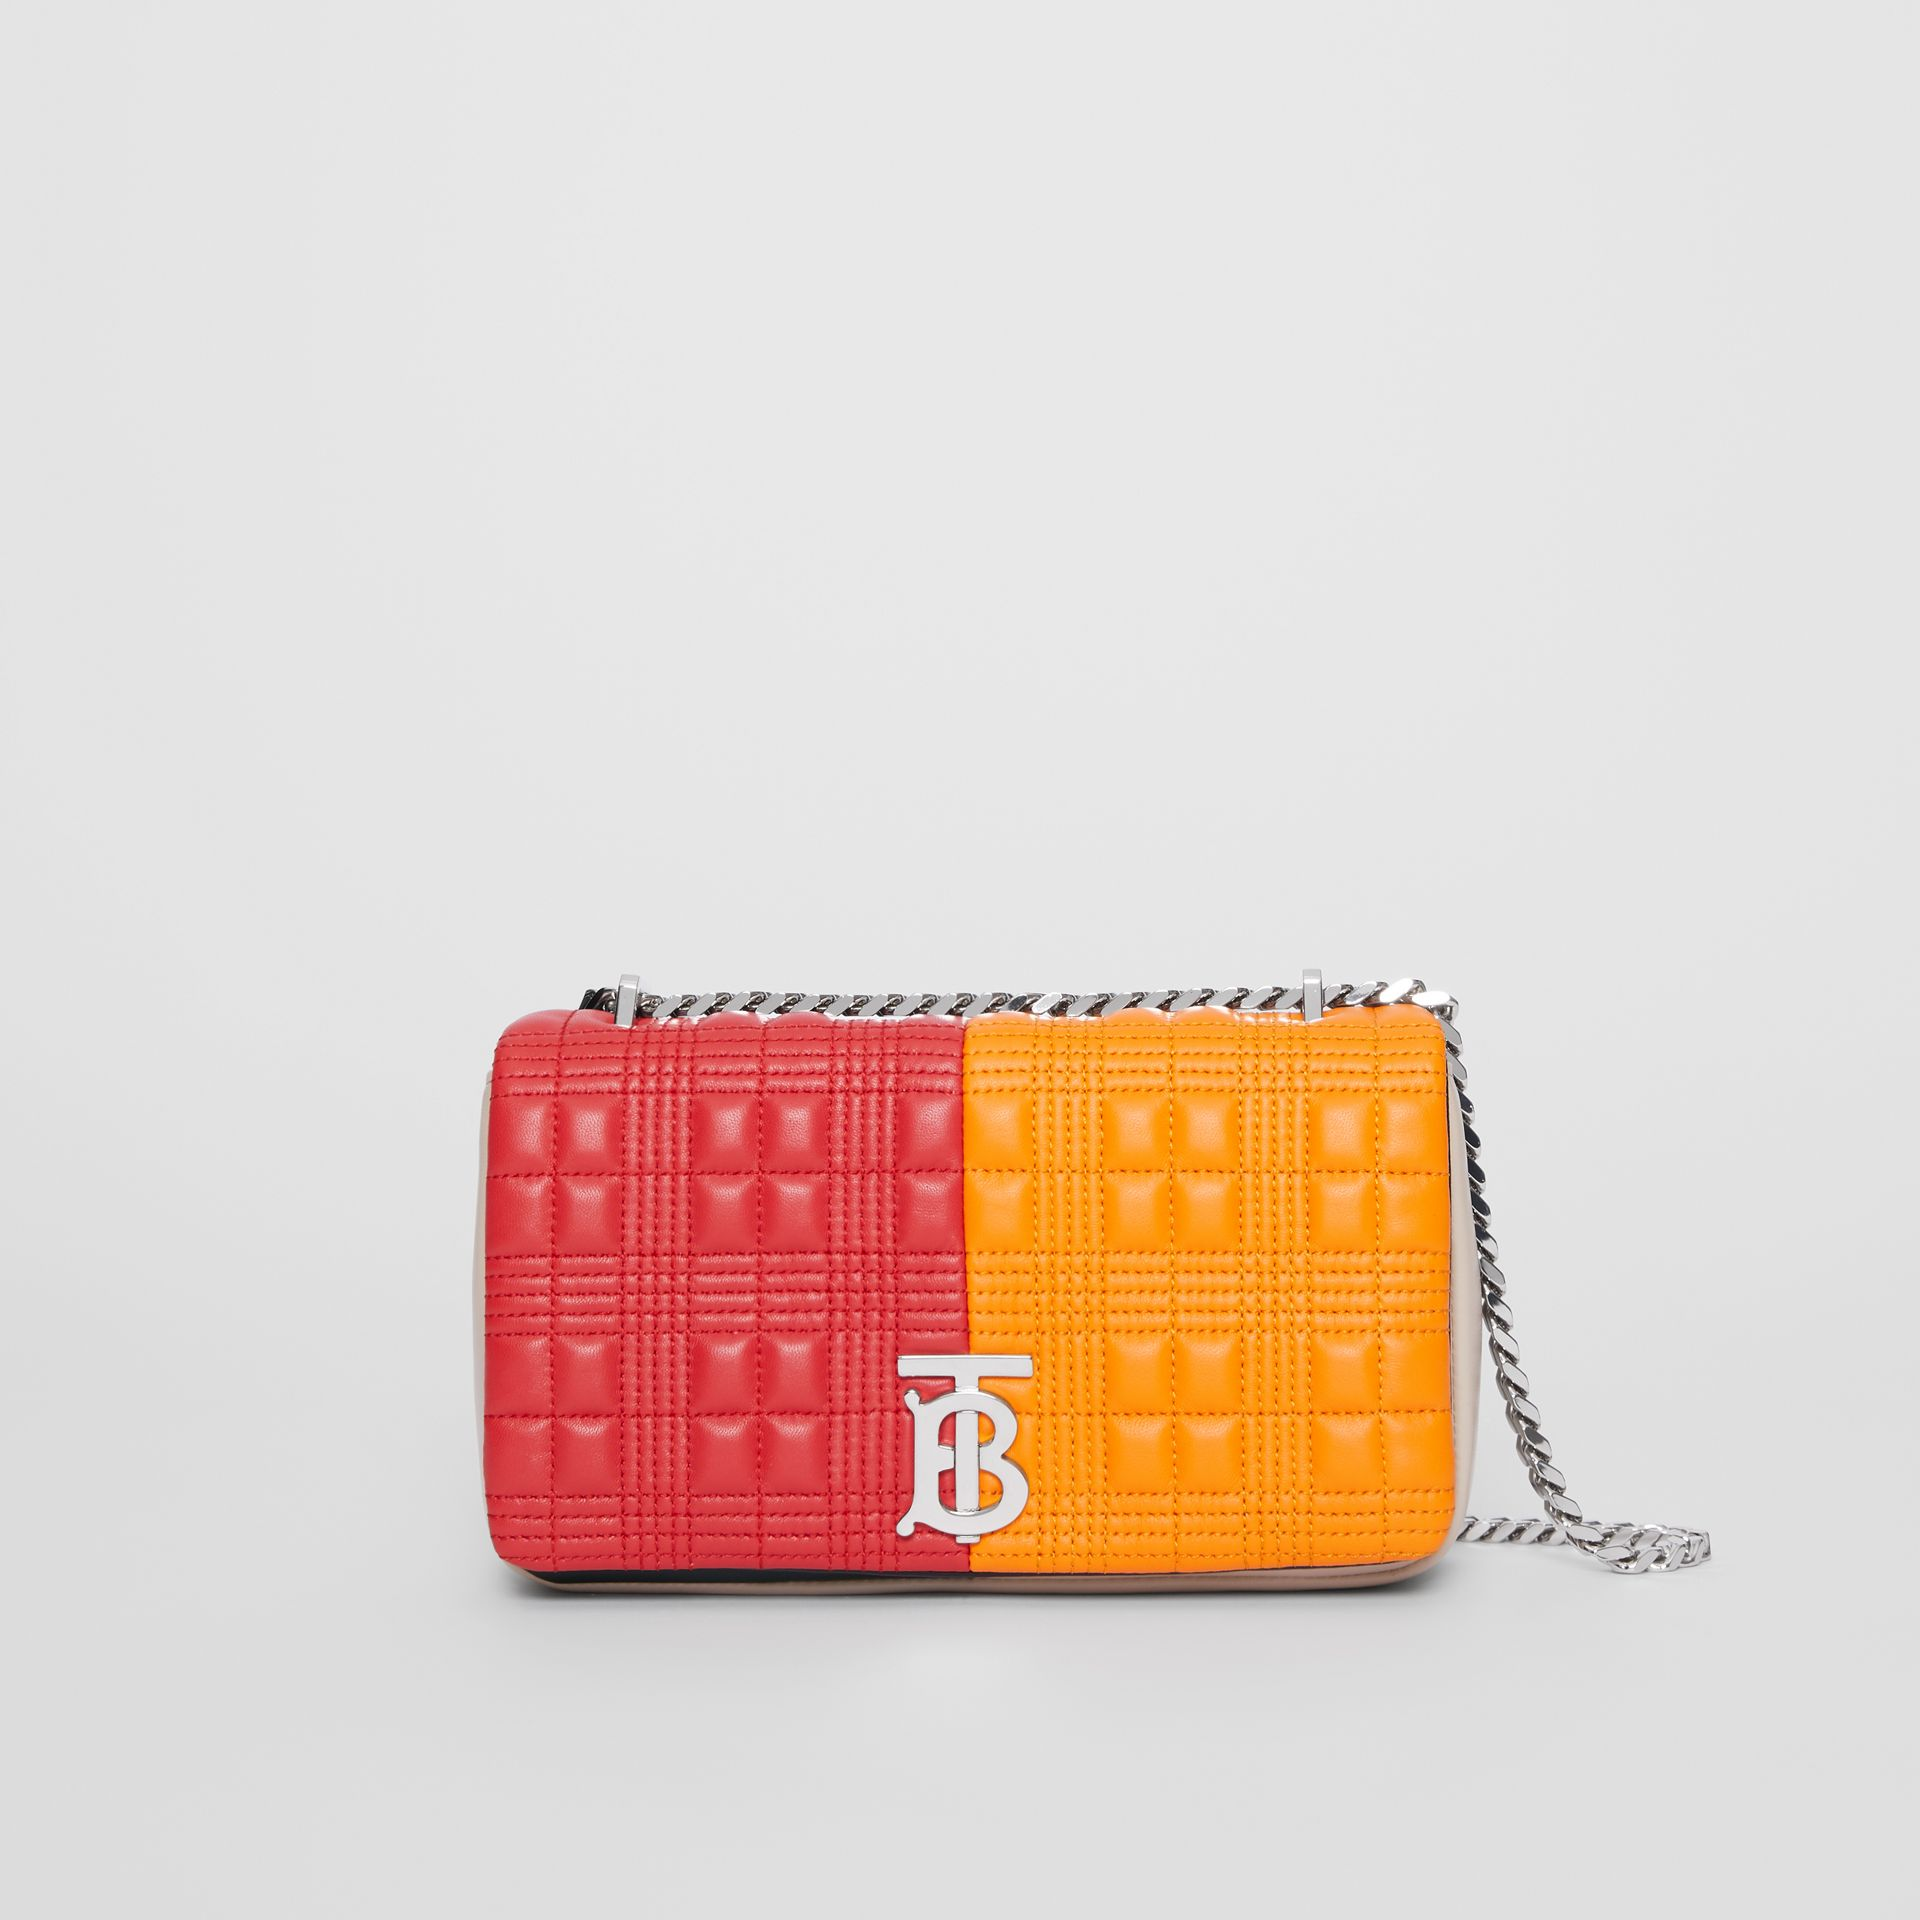 "Kleine Handtasche ""Lola"" aus gestepptem Lammleder in Colour-Blocking-Optik (Leuchtendes Rot/orange) - Damen 